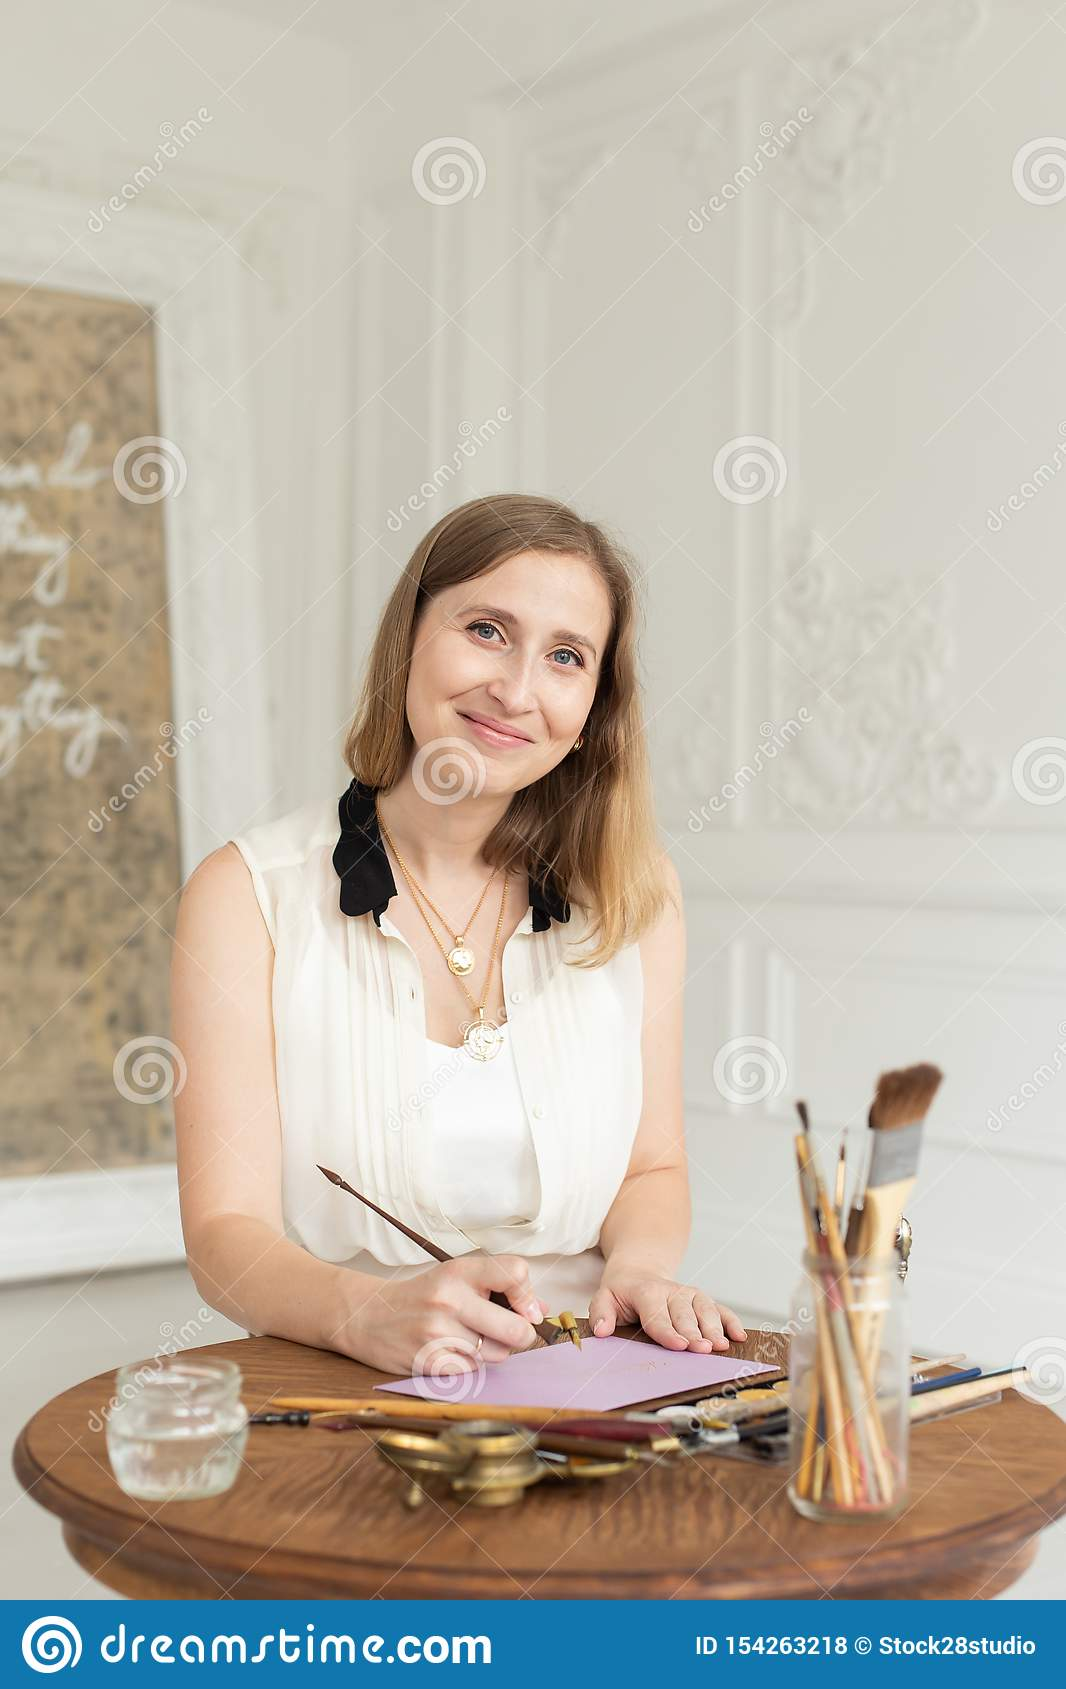 The girl artist is inspired and paints a picture. Holds a brush. Soft focus. Interior artist`s workshop.